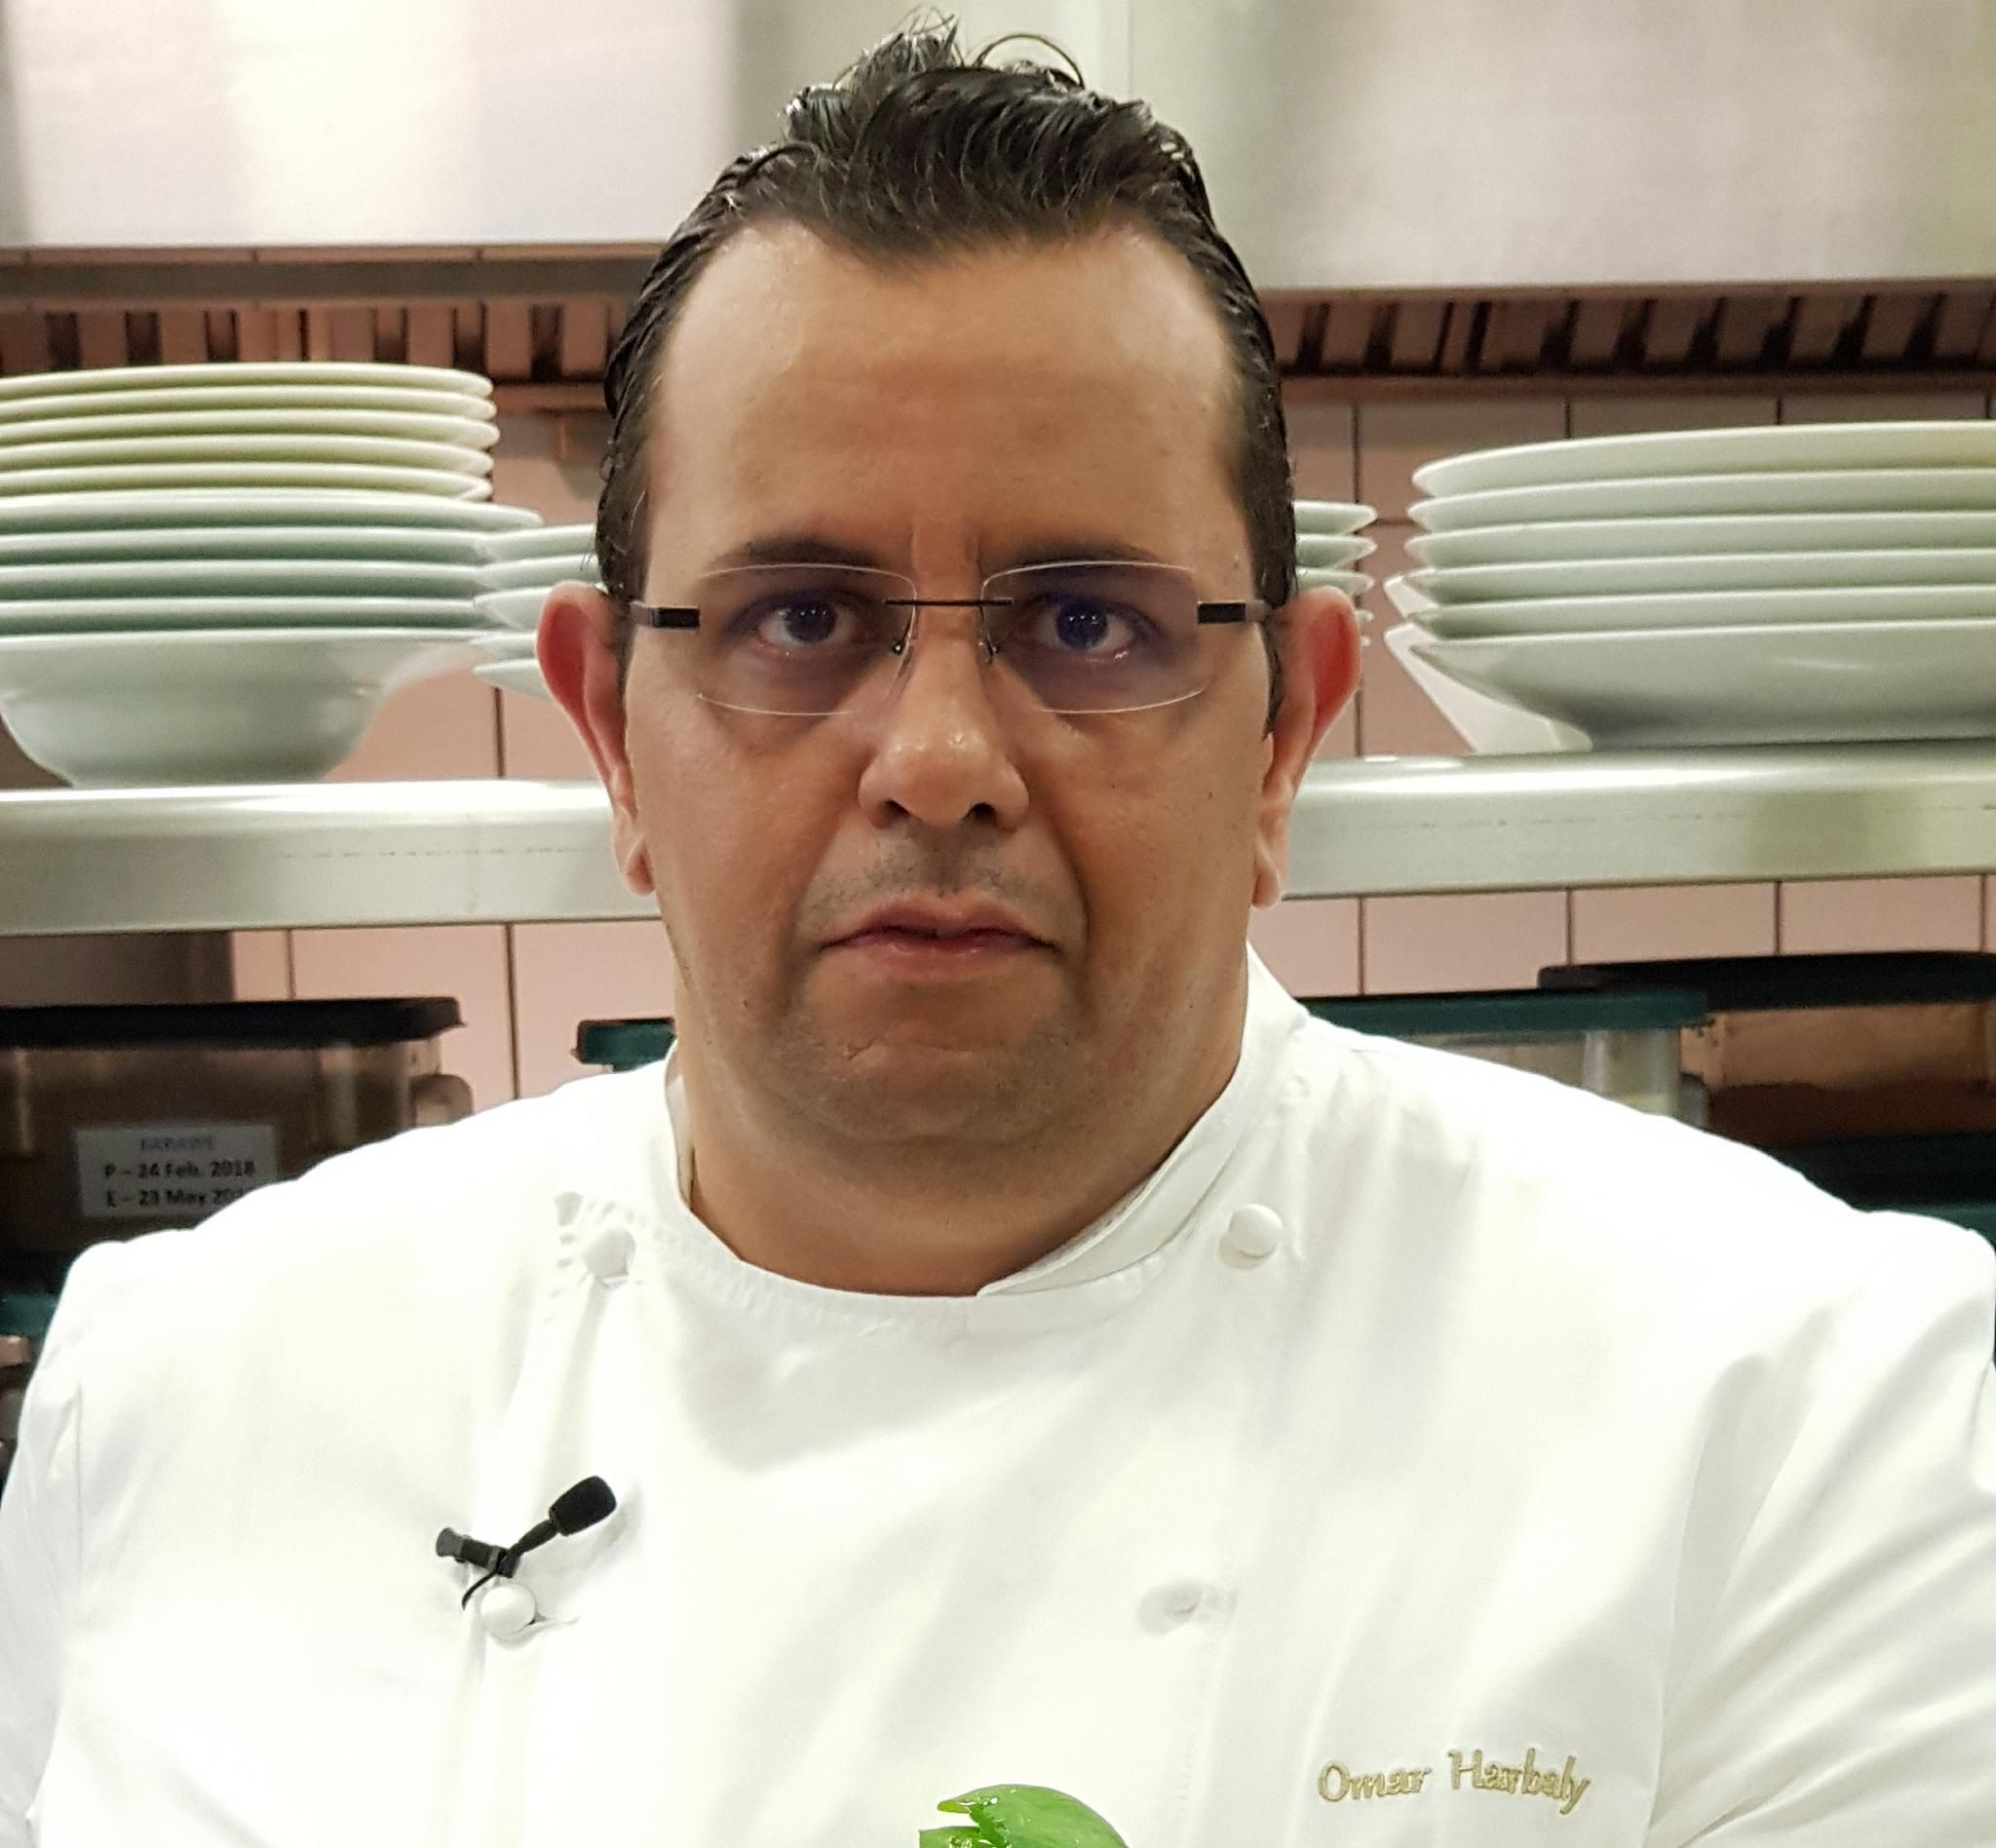 Chef Omar Harbaly